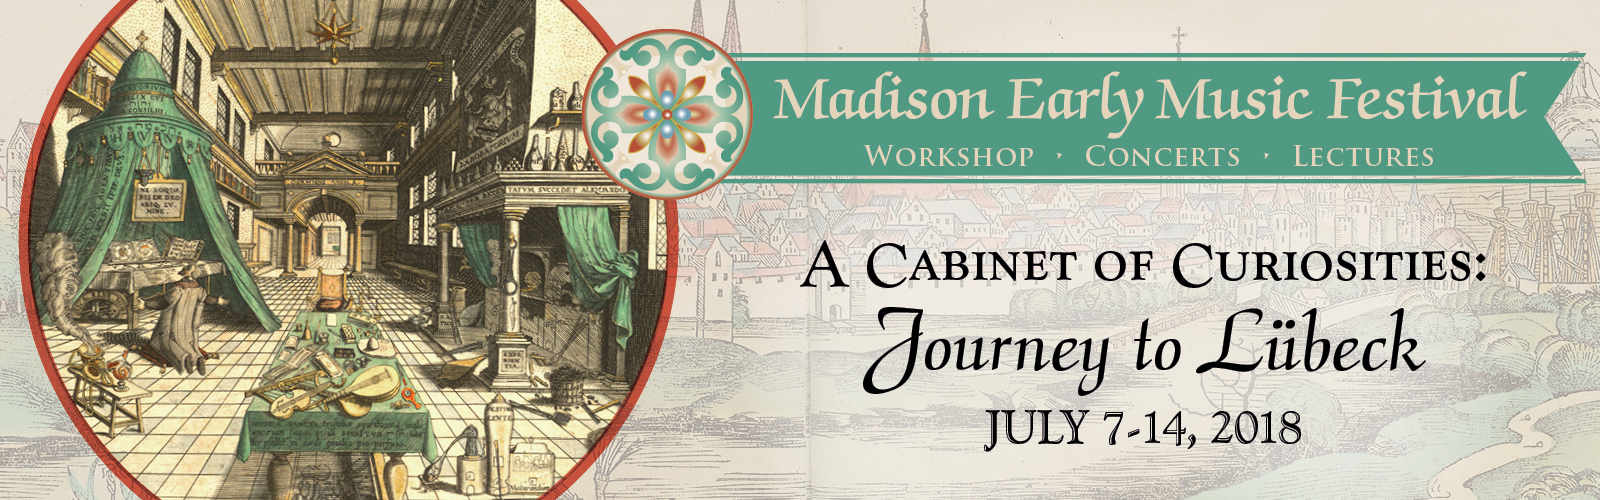 Madison Early Music Festival 2018, Workshop, Concerts, Lectures, A Cabinet of Curiousities: Journey to Lübeck, July 7-14, 2018